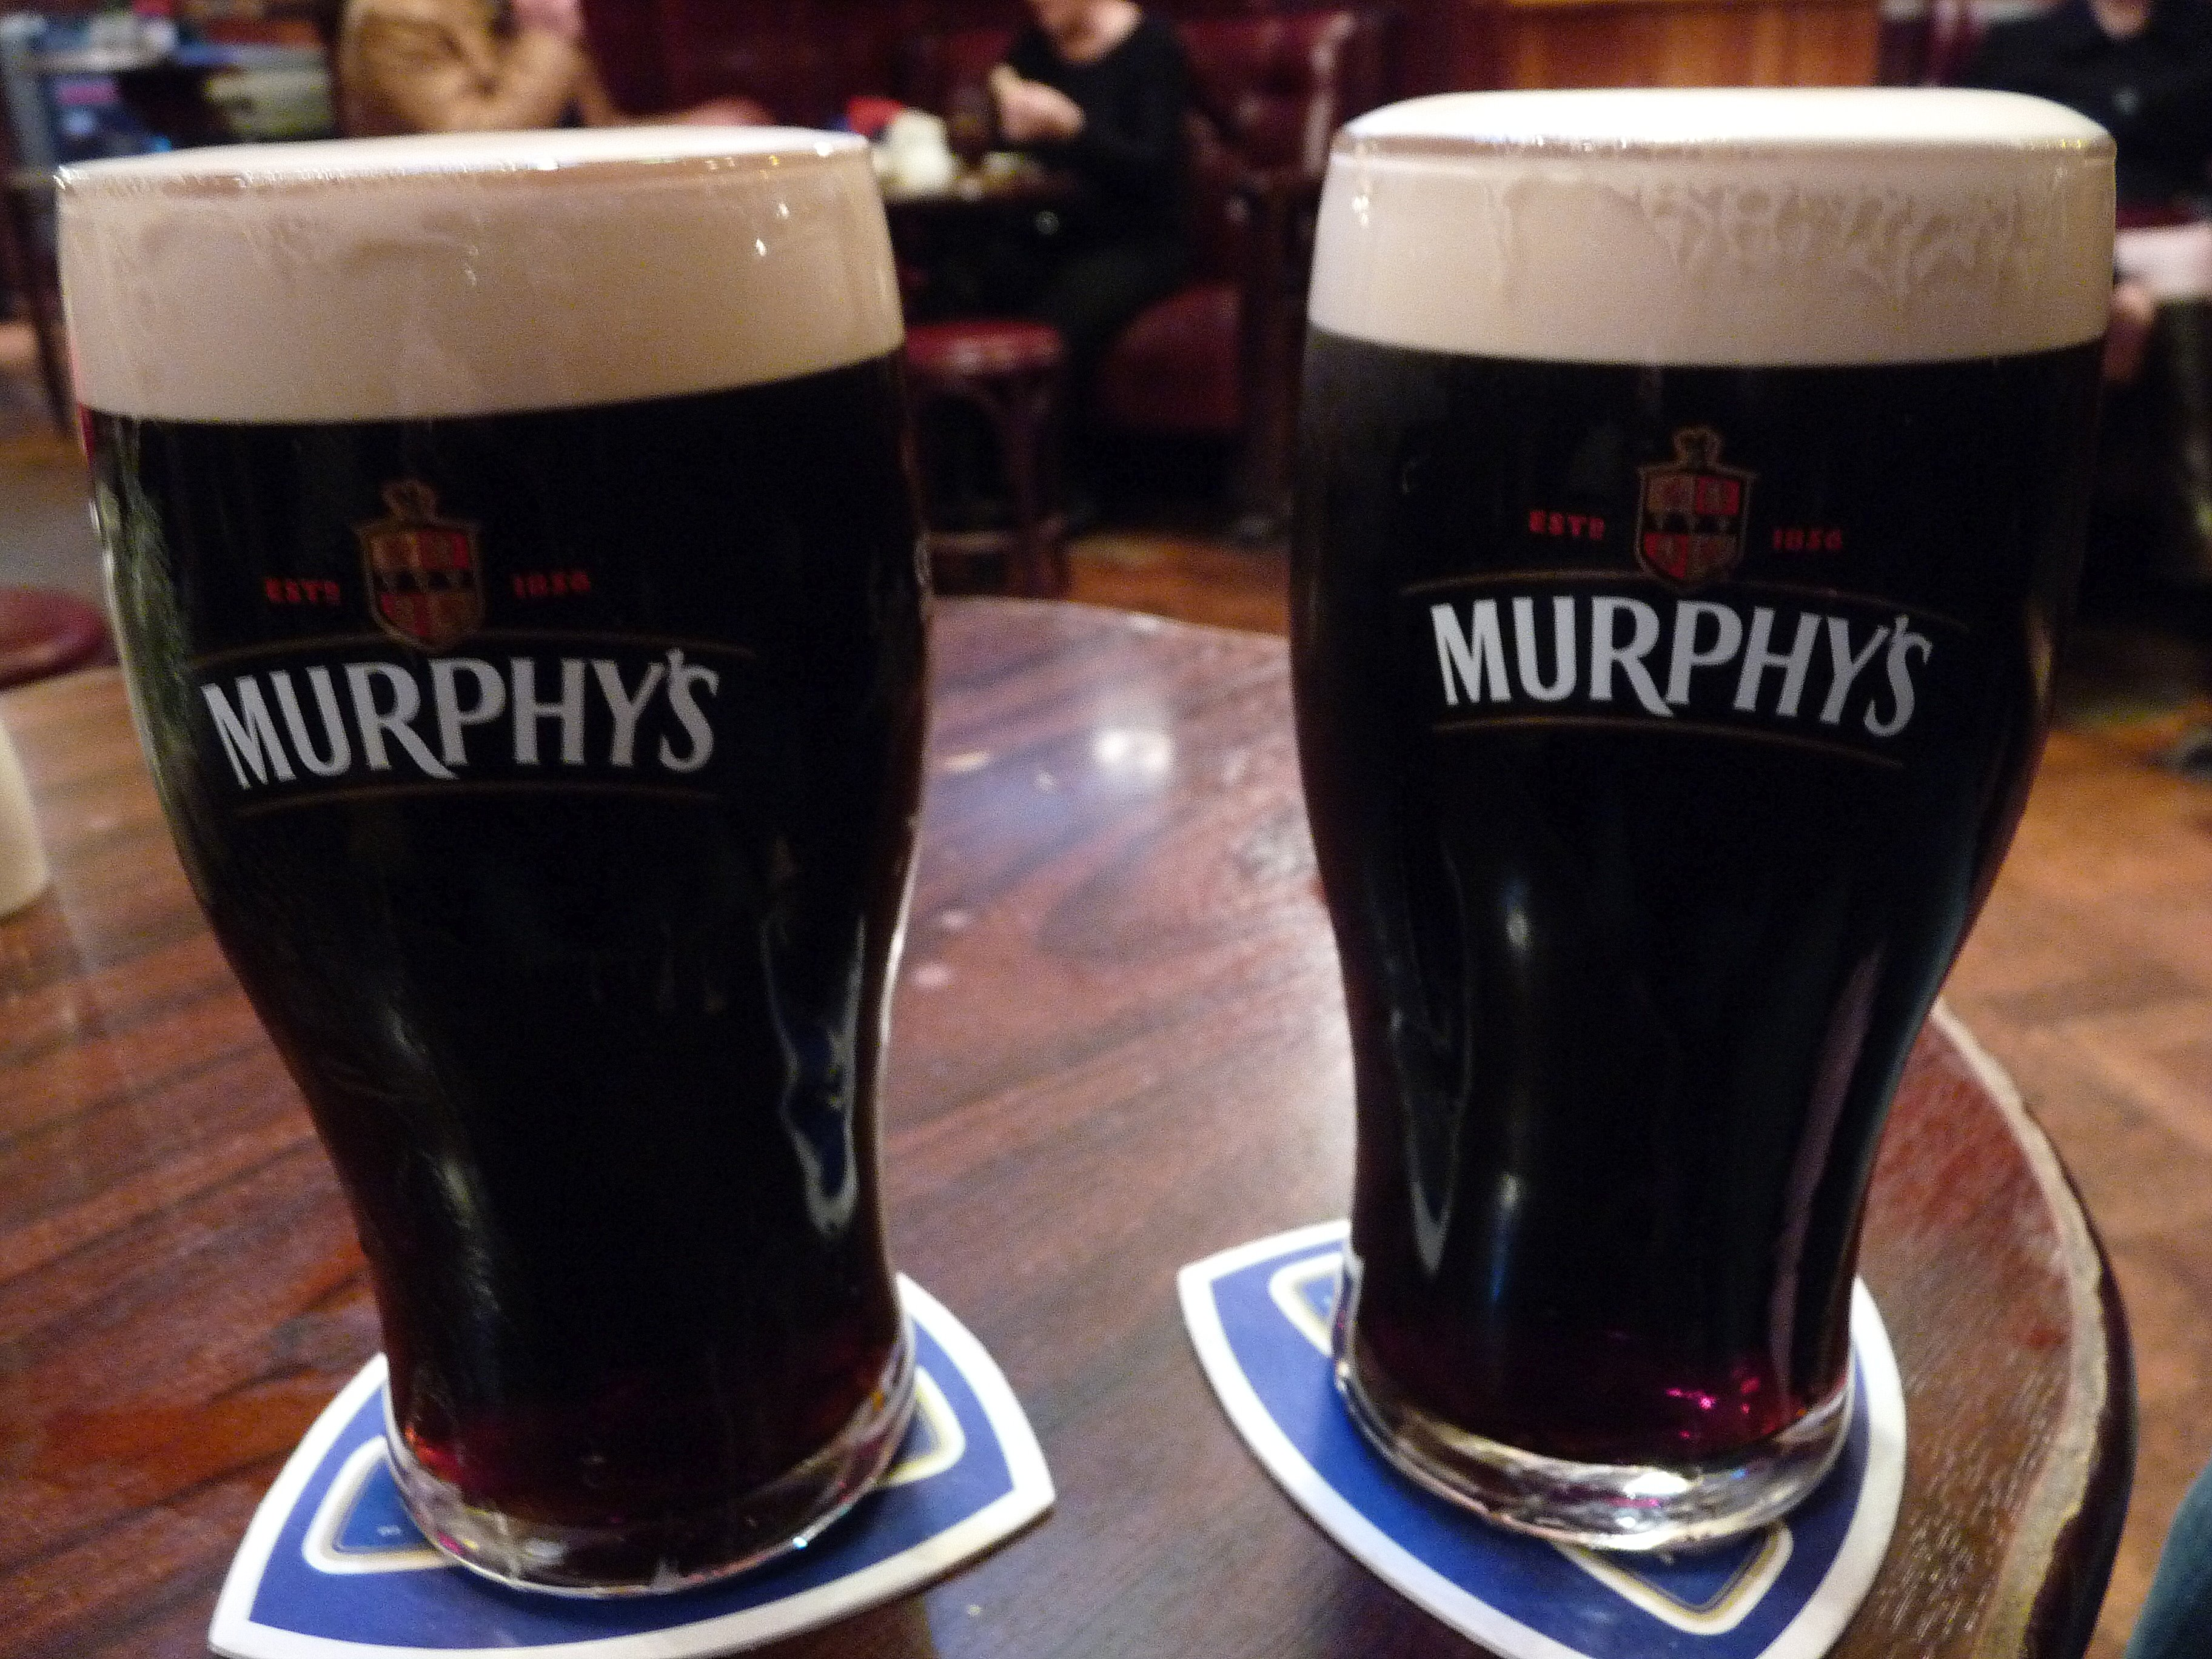 visiting Ireland tips: there is more than just Guinness